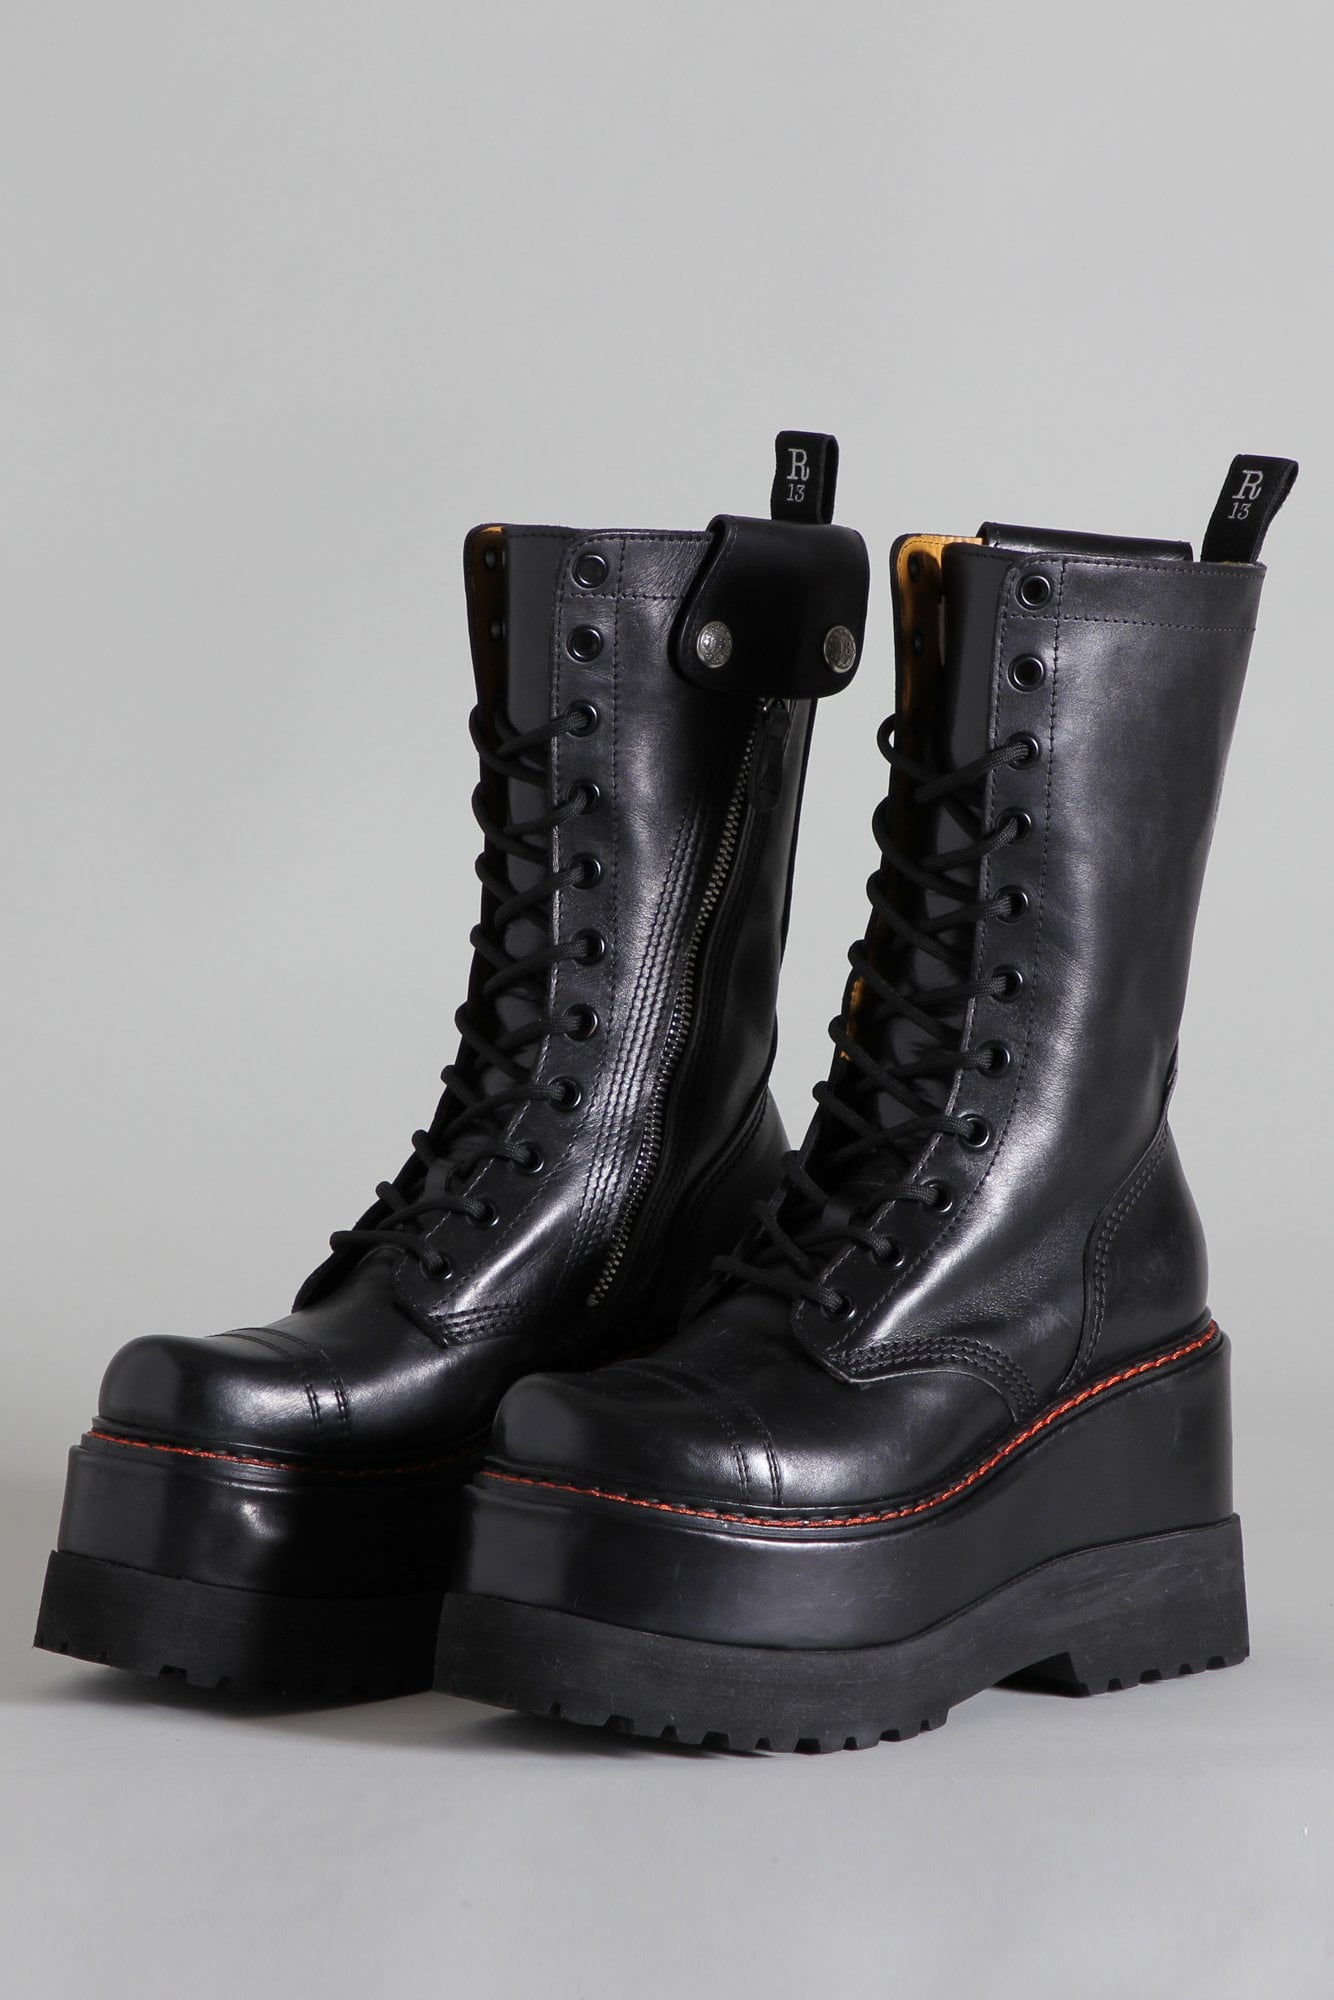 Medium Platform Boot - Black